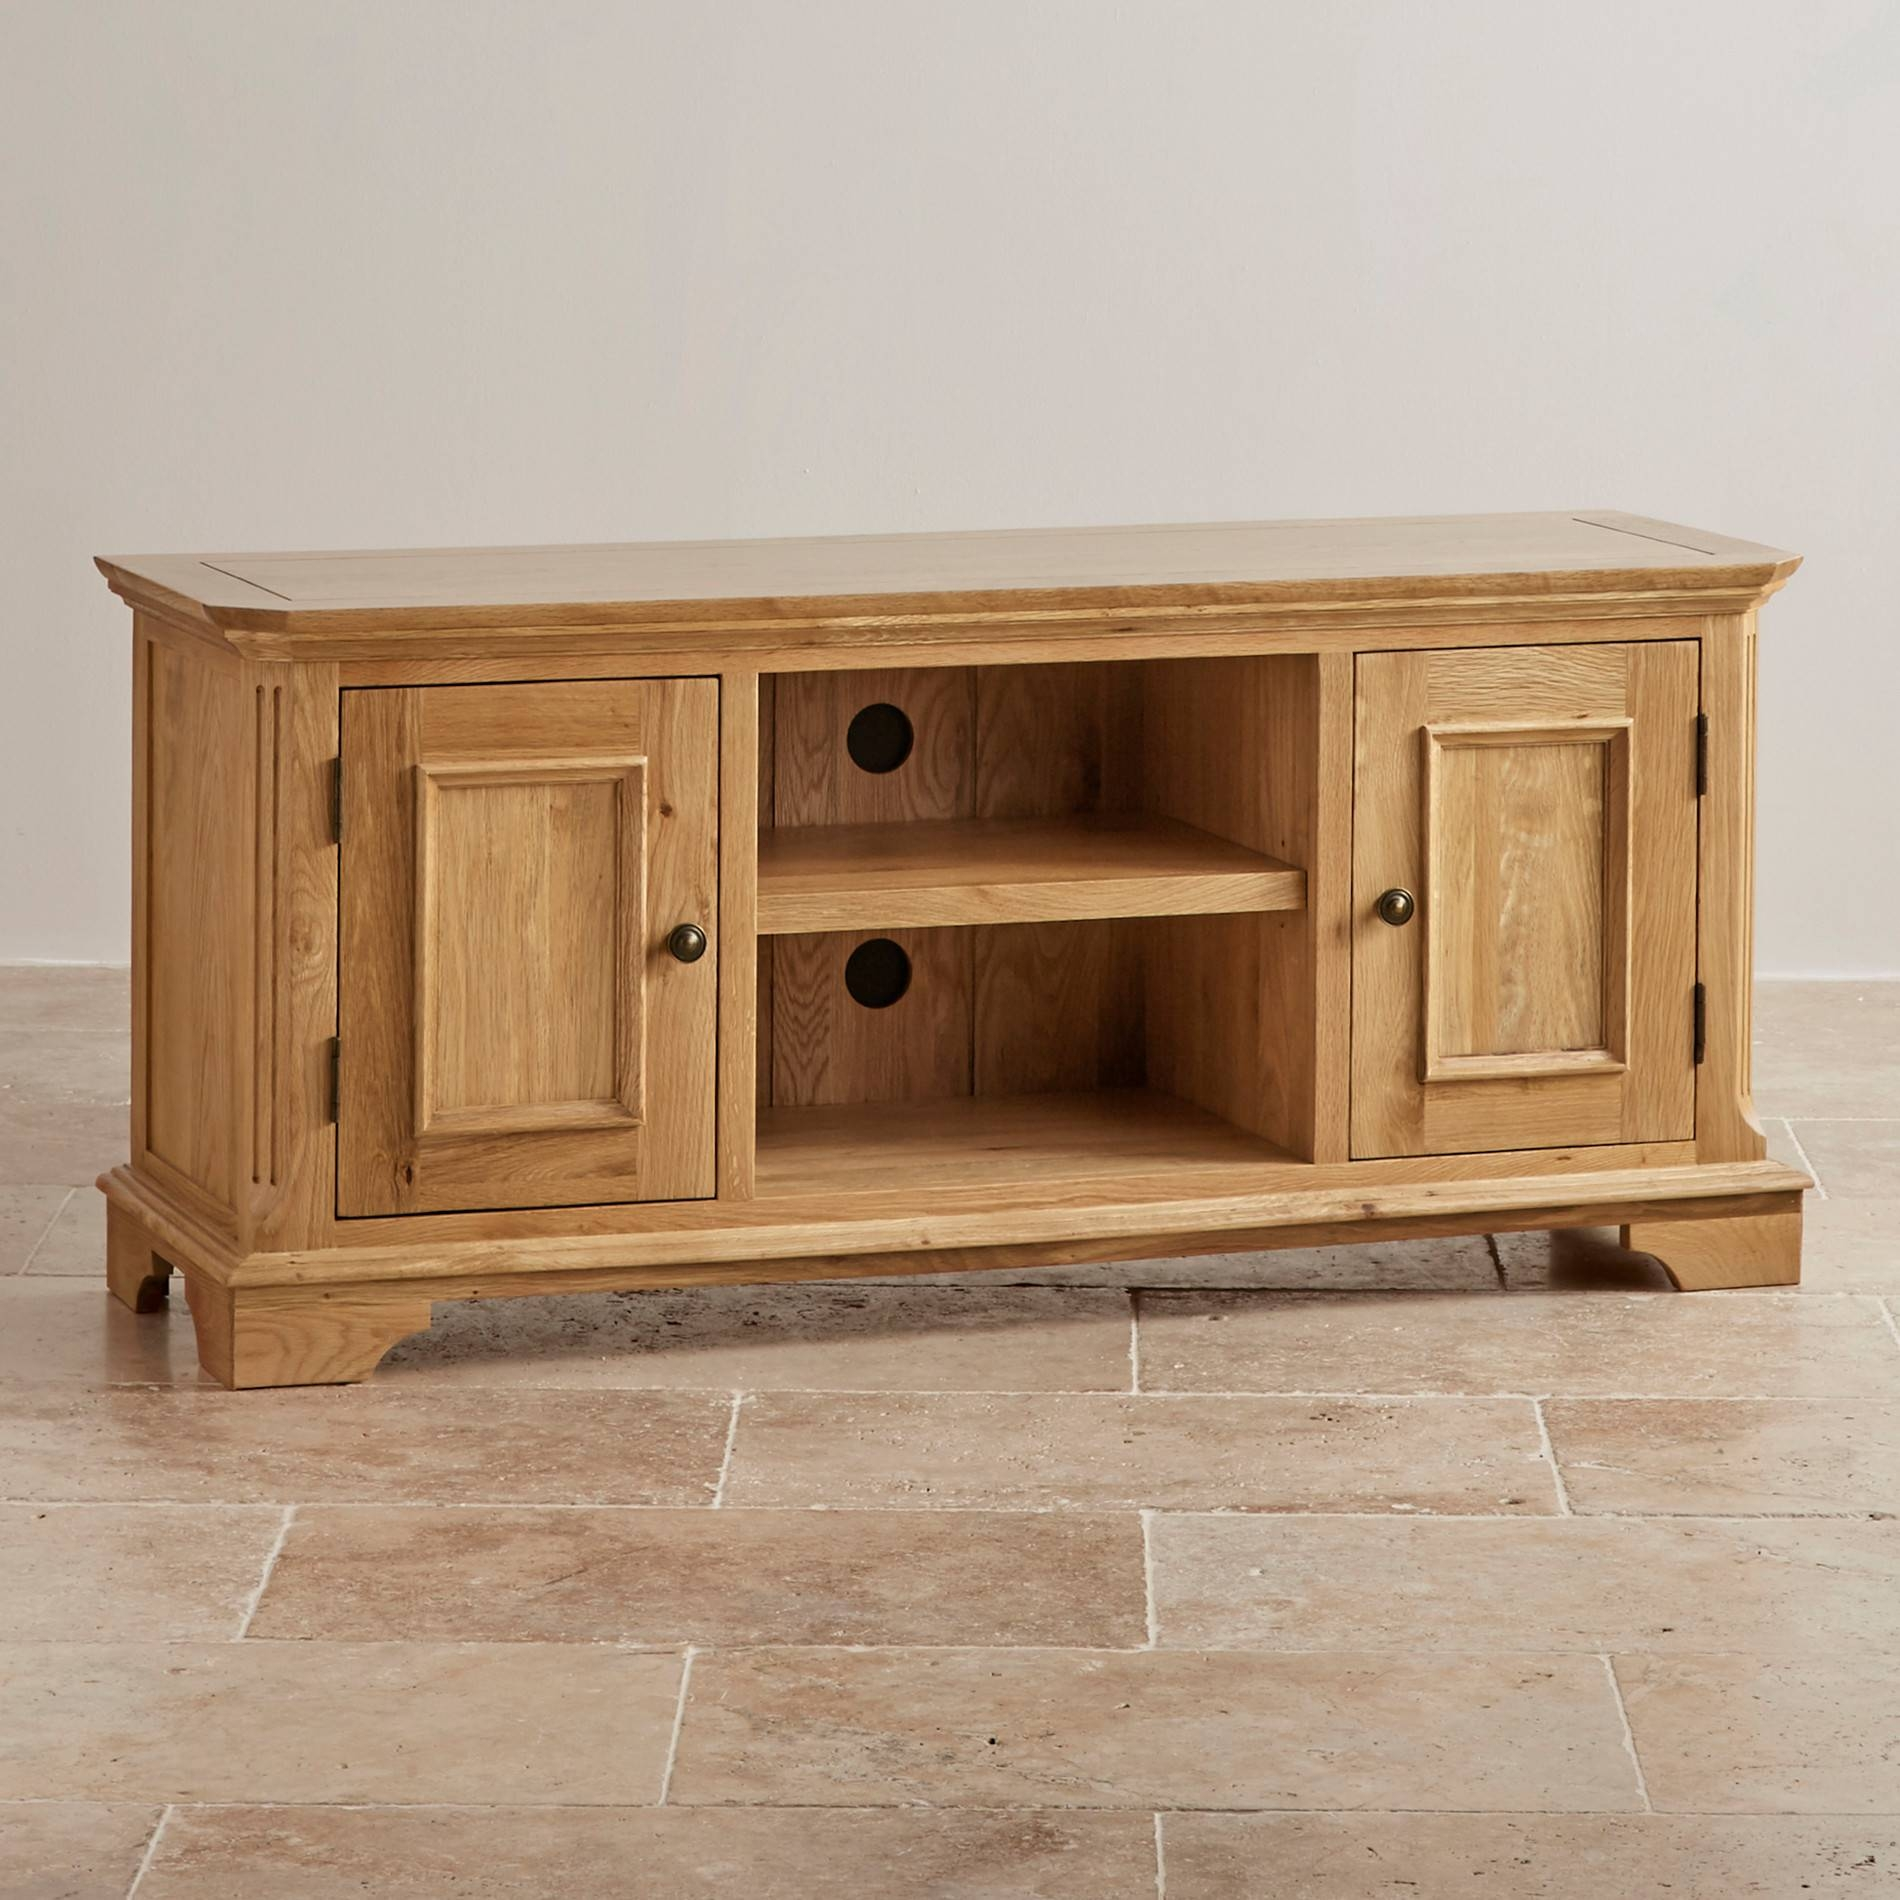 Edinburgh Tv Cabinet In Natural Solid Oak | Oak Furniture Land In Tv Cabinets (View 8 of 15)